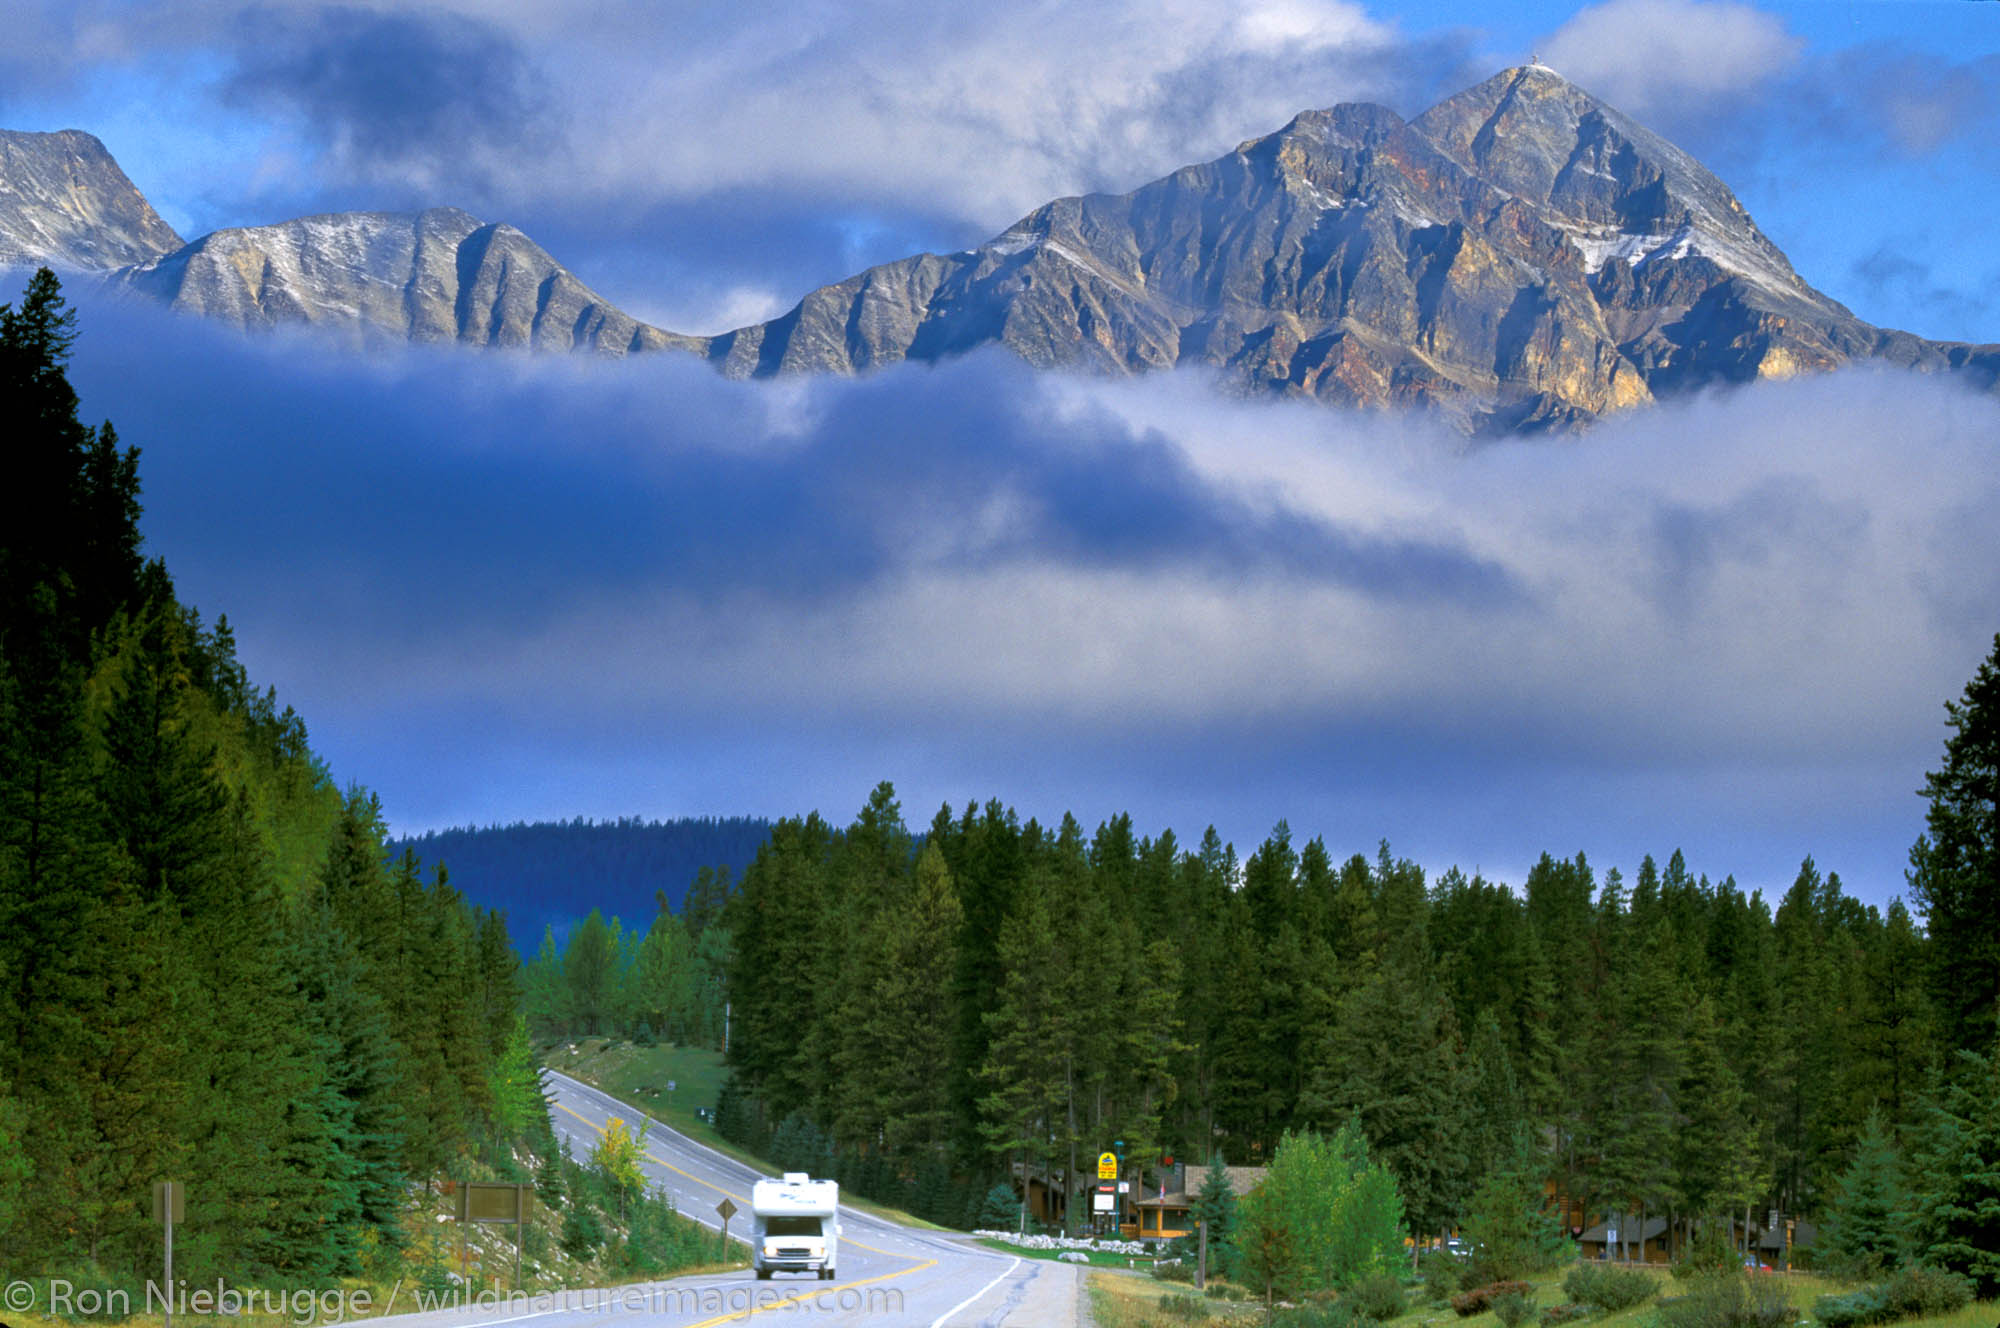 A RV on the Icefields Highway just outside of Jasper, Jasper National Park, Alberta, Canada.